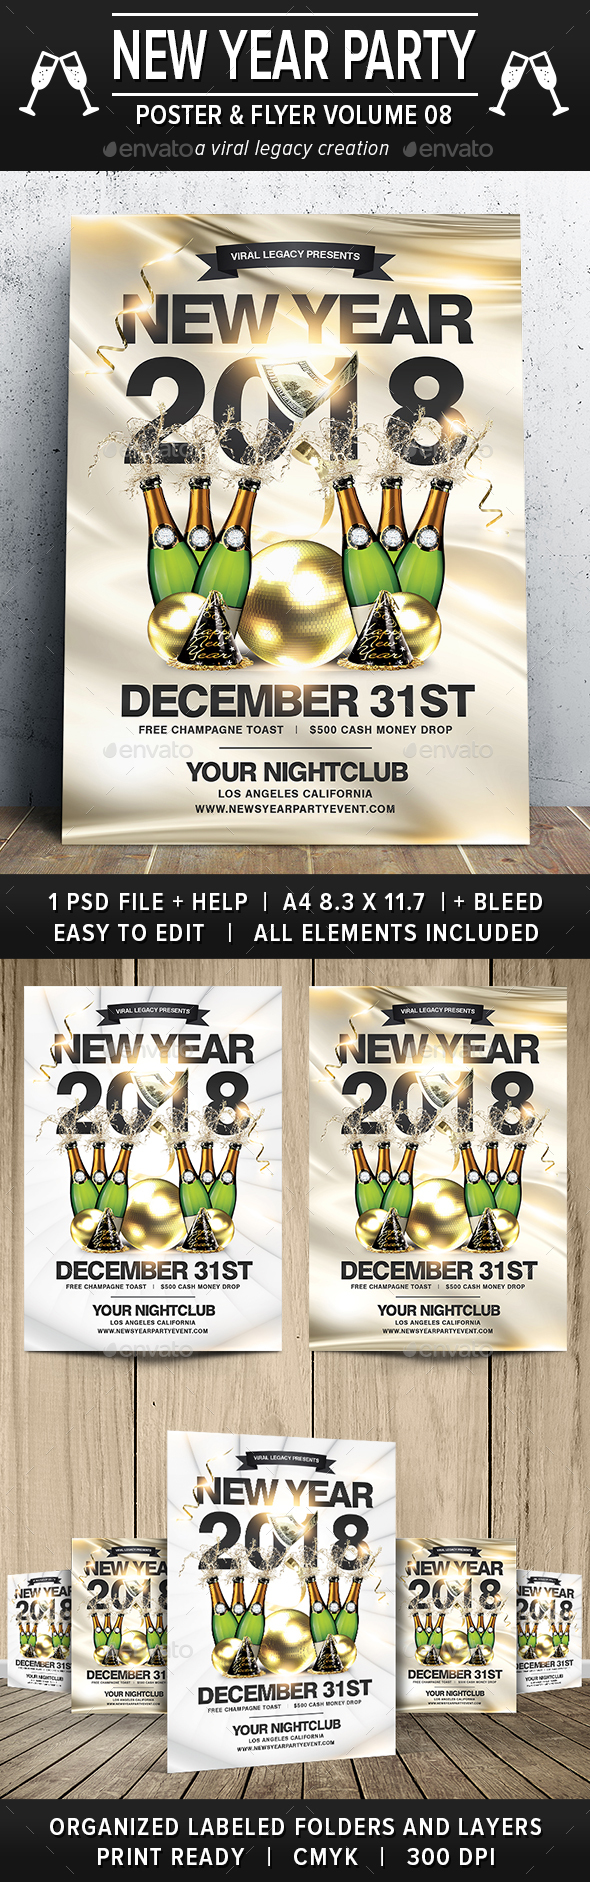 New Year Party Poster / Flyer V08 - Events Flyers